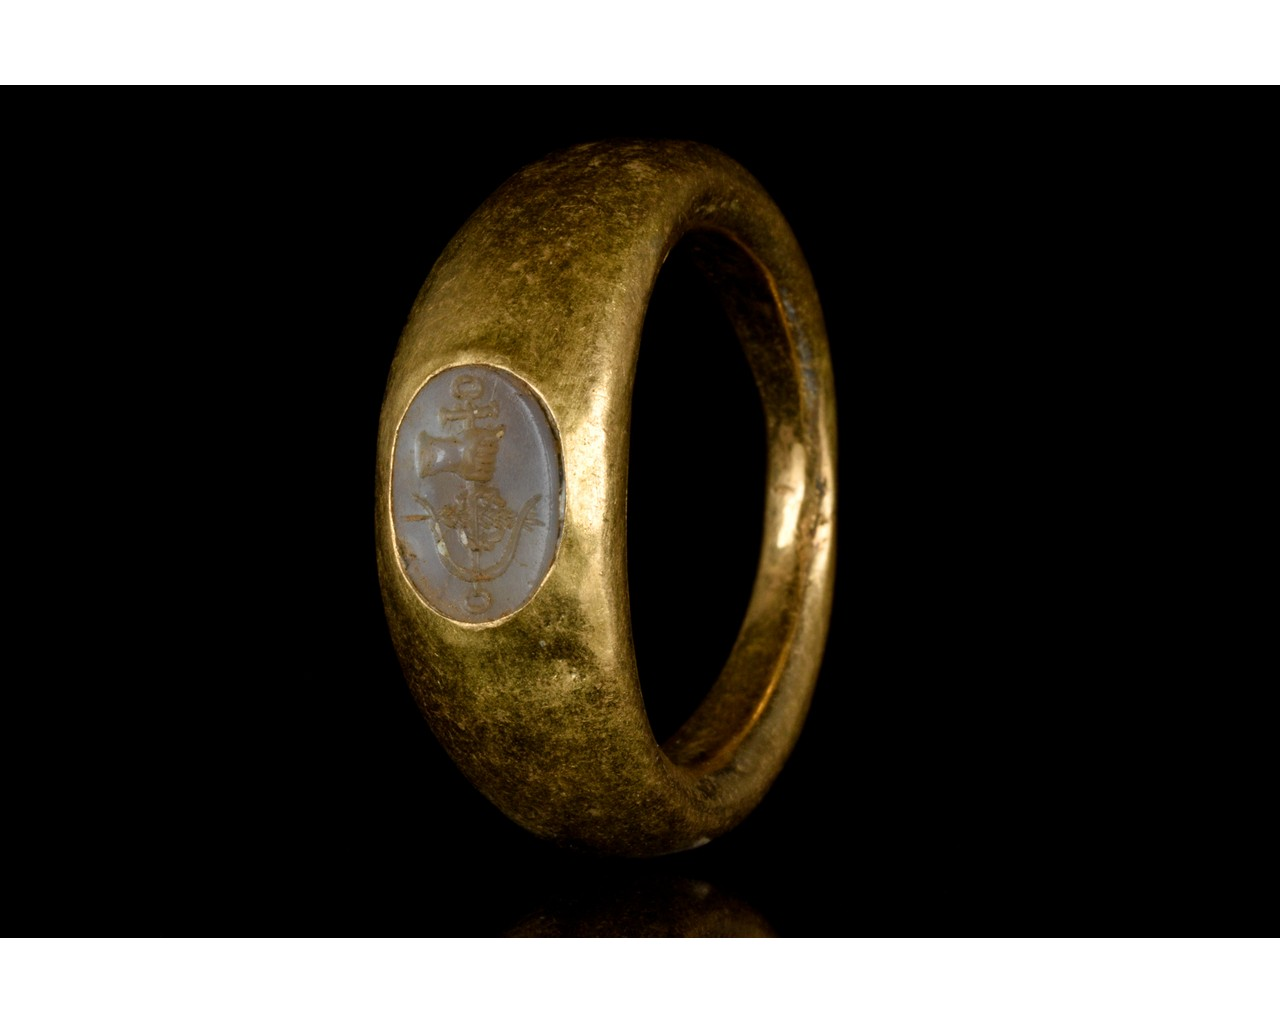 ROMAN GOLD AND CHALCEDONY INTAGLIO RING WITH SYMBOL - FULL ANALYSIS